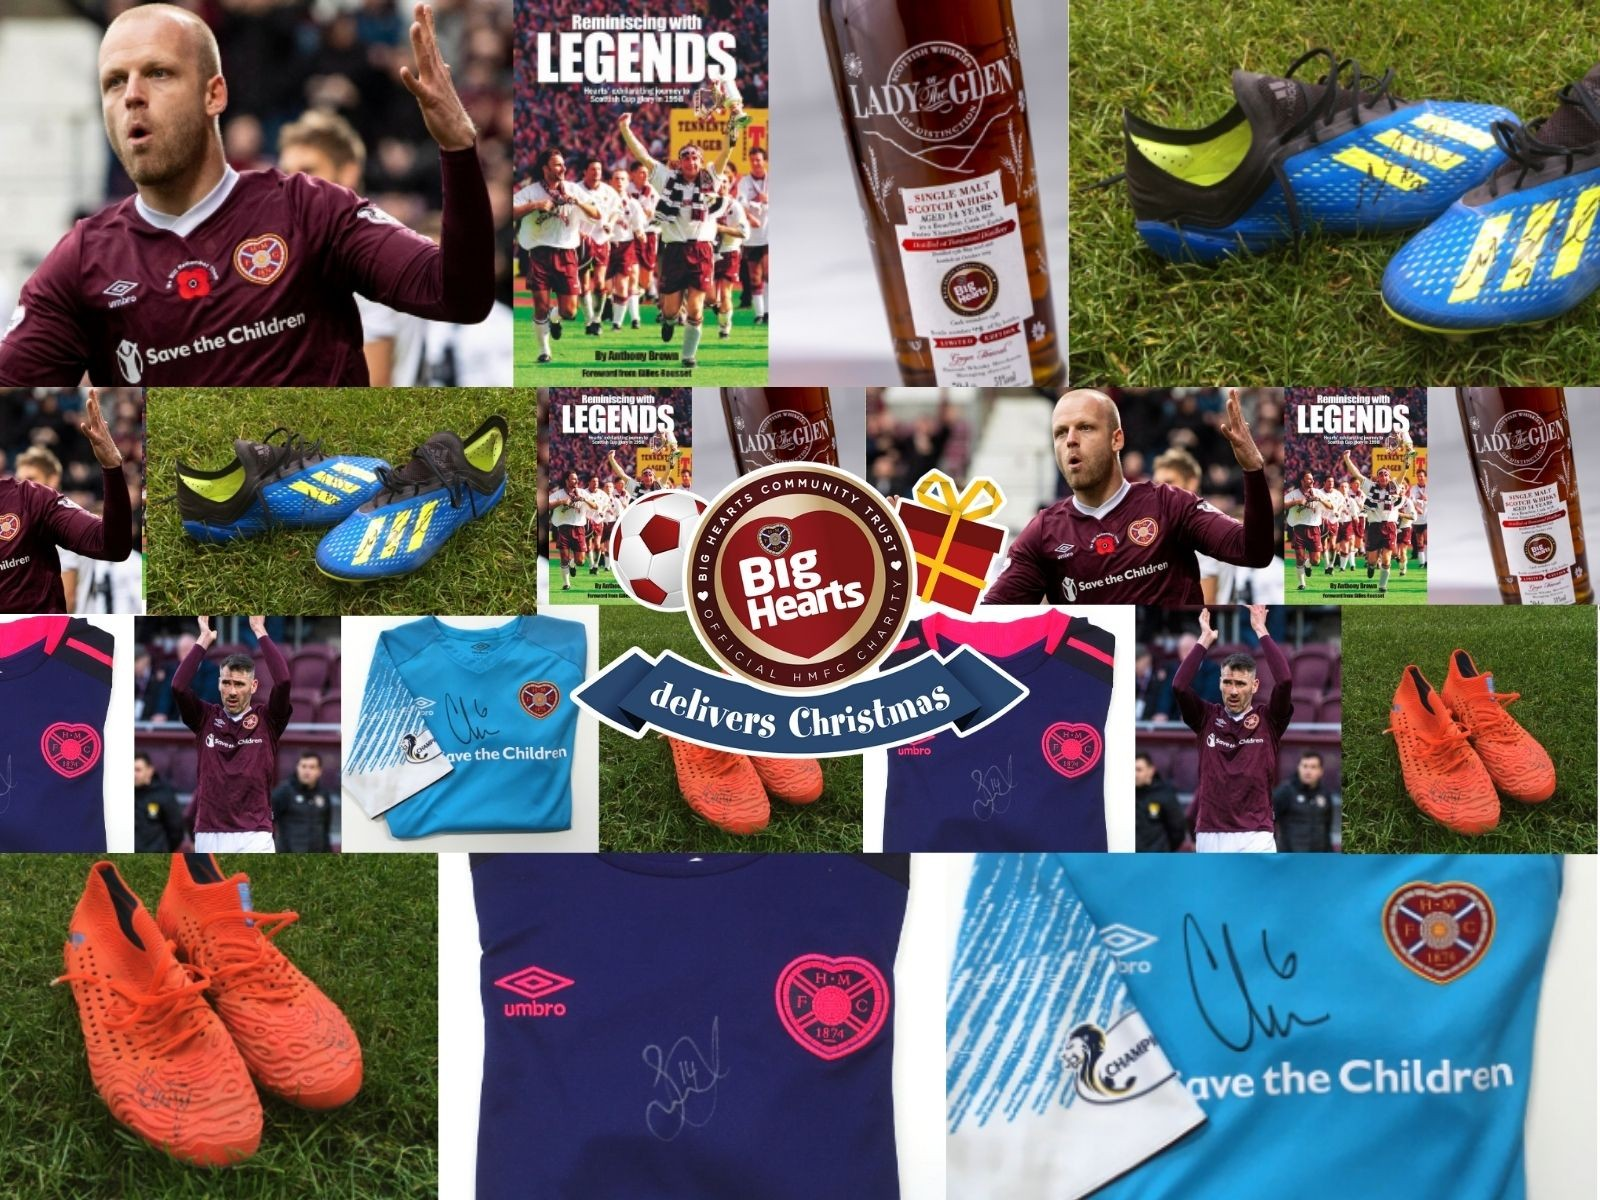 » JUST ANNOUNCED: BIG HEARTS CHRISTMAS RAFFLE OPEN UNTIL 24 DECEMBER!